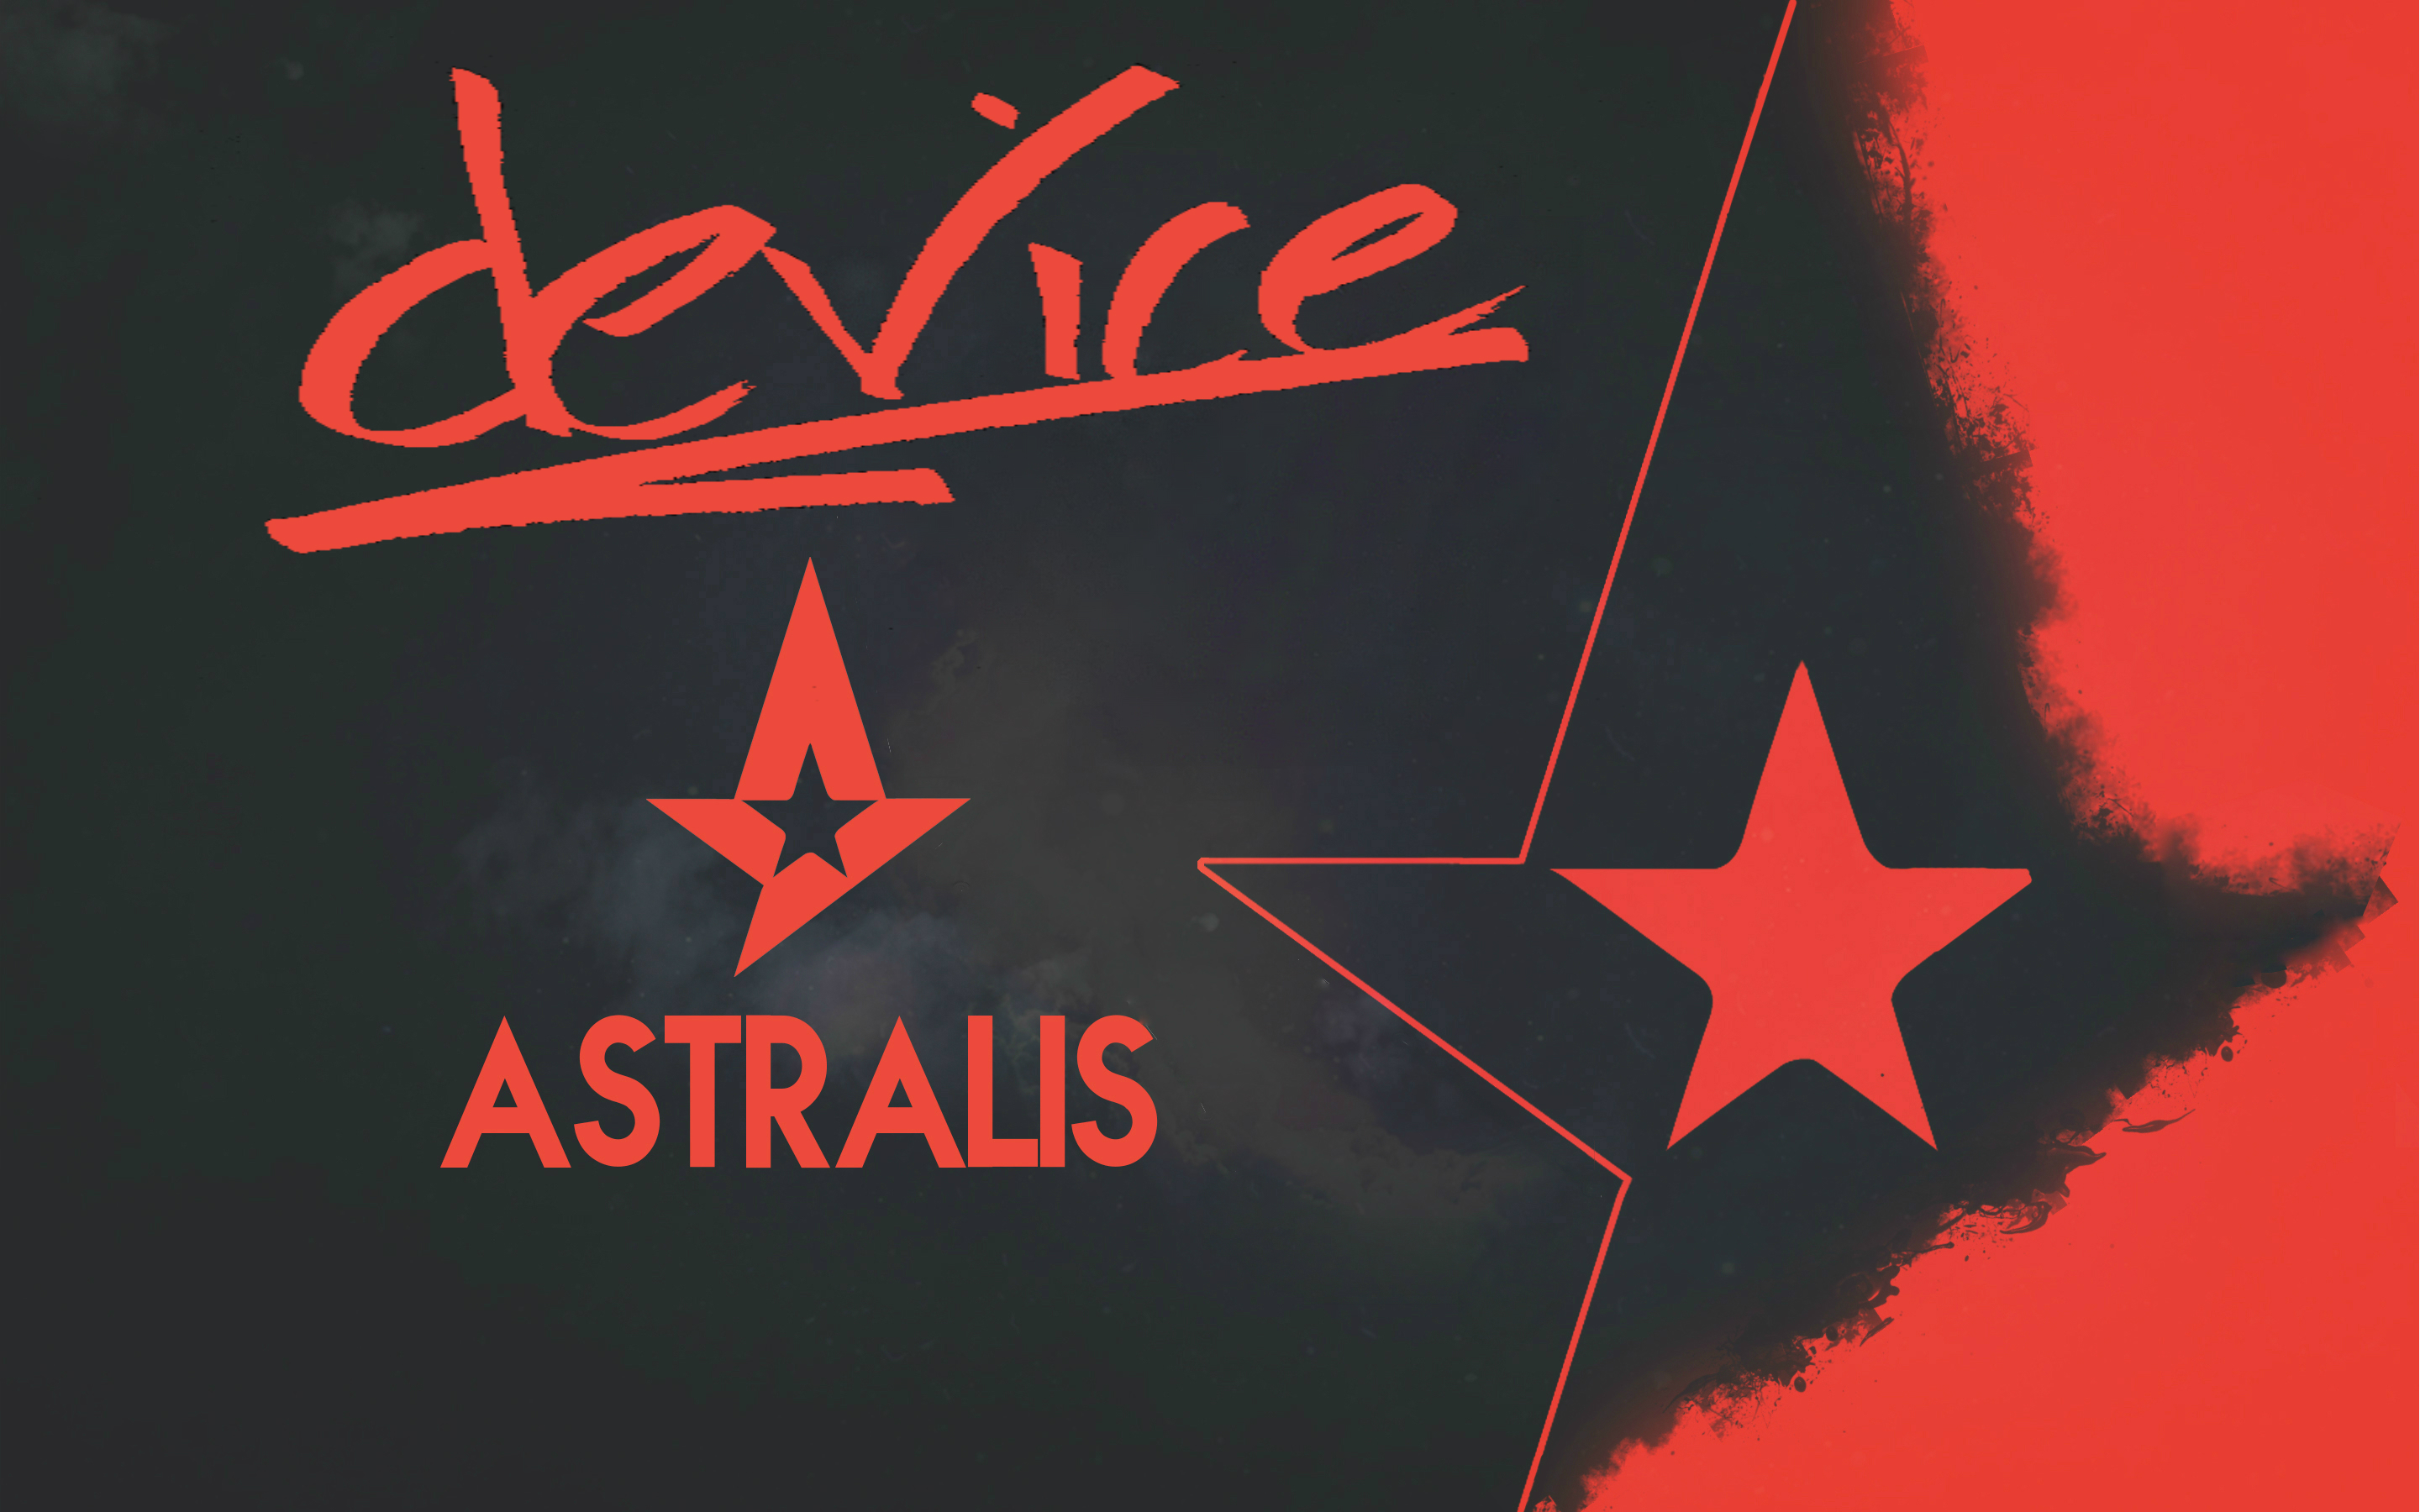 Dev1ce astralis wallpaper version cs go wallpapers and backgrounds - Walpepar photos ...